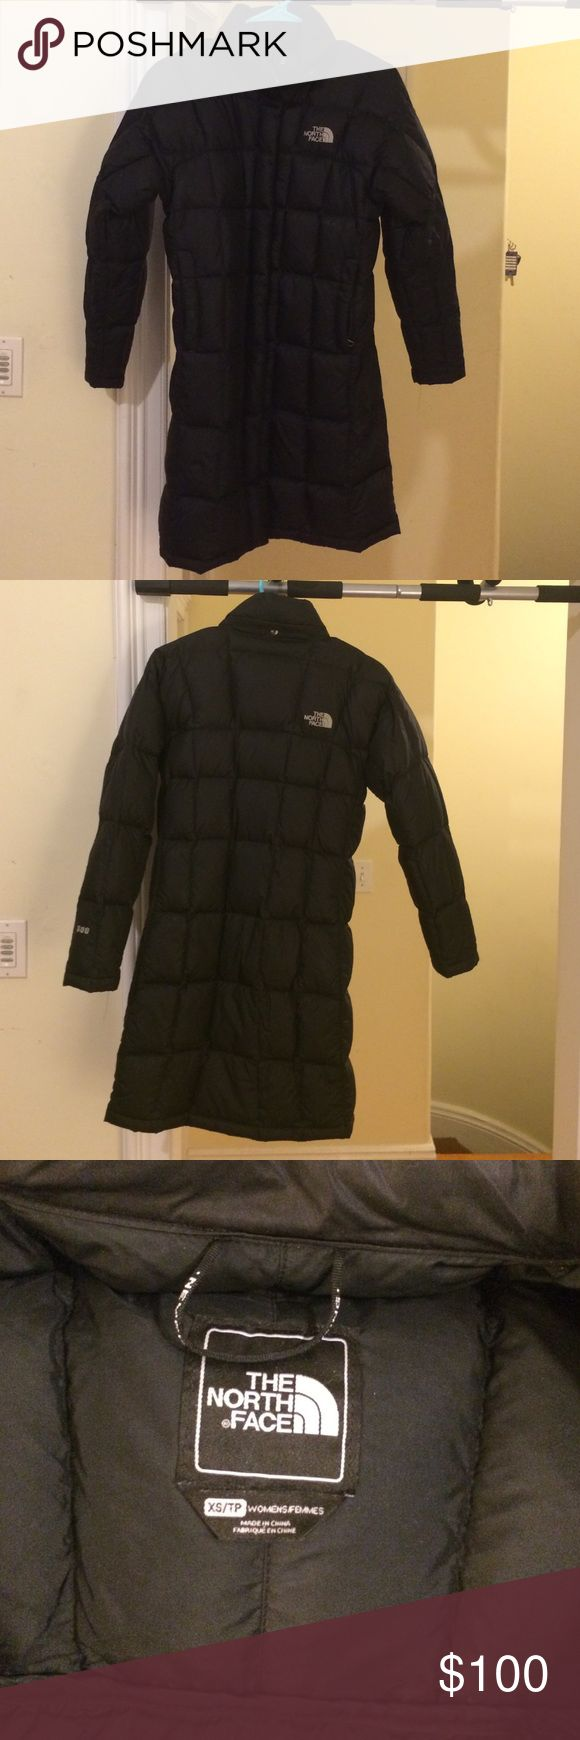 The North Face Women's Black Winter Jacket - XS Knee length, down feather, black North Face winter jacket.  This is in good condition with minimal wear and tear. Extremely warm and light. The North Face Jackets & Coats Puffers